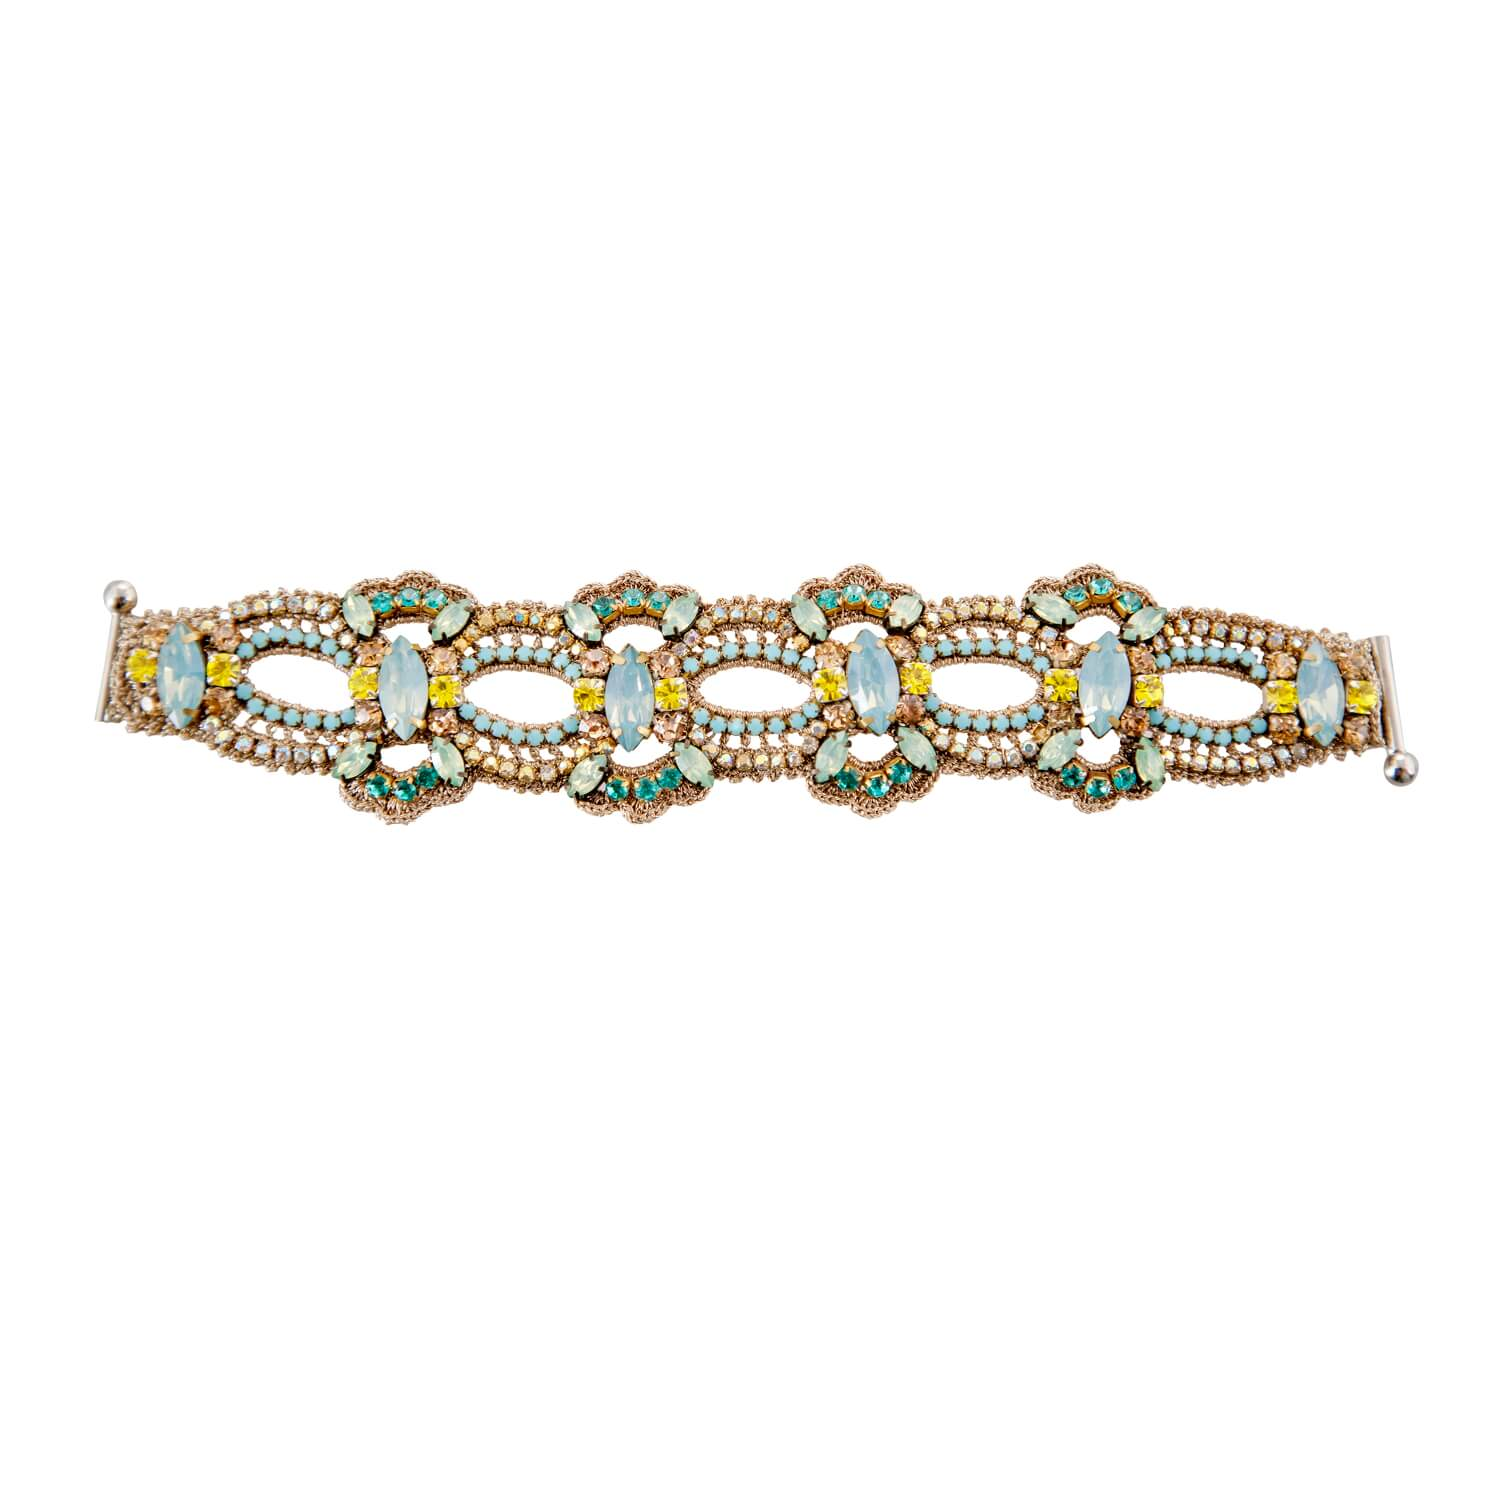 Disco Crochet Scallop Strap Bracelet - Lemon Opal Emerald